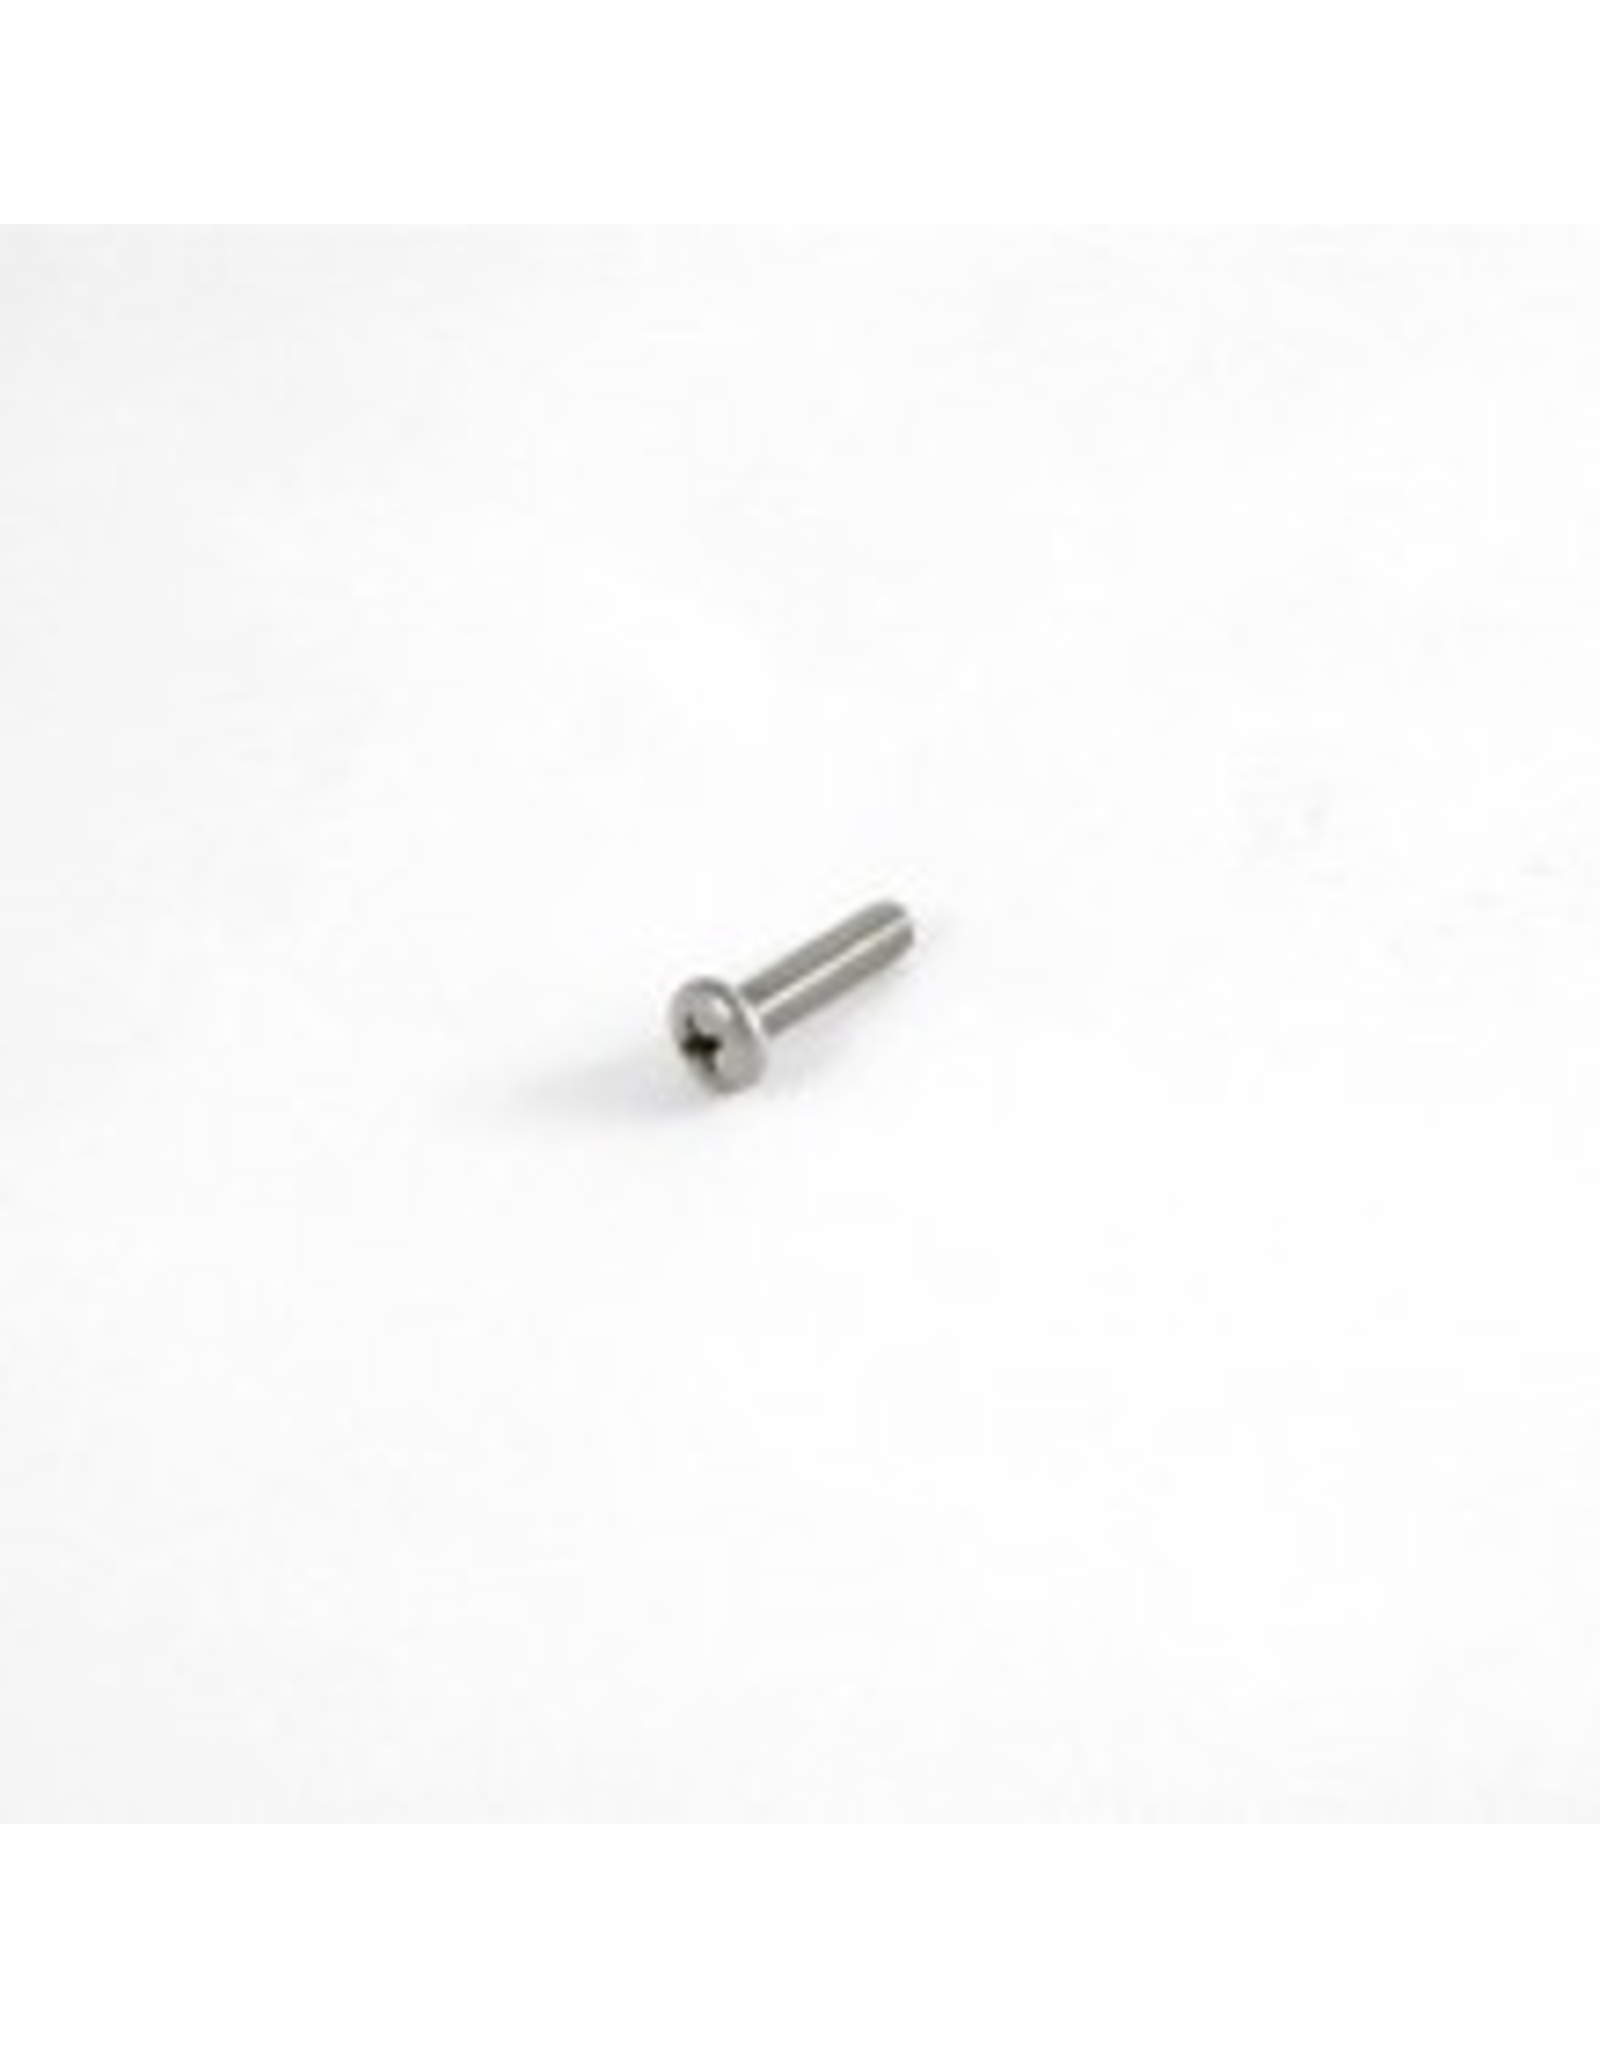 Hobie SCREW 10-32 X 3/4 RHMS-P SS, X-43